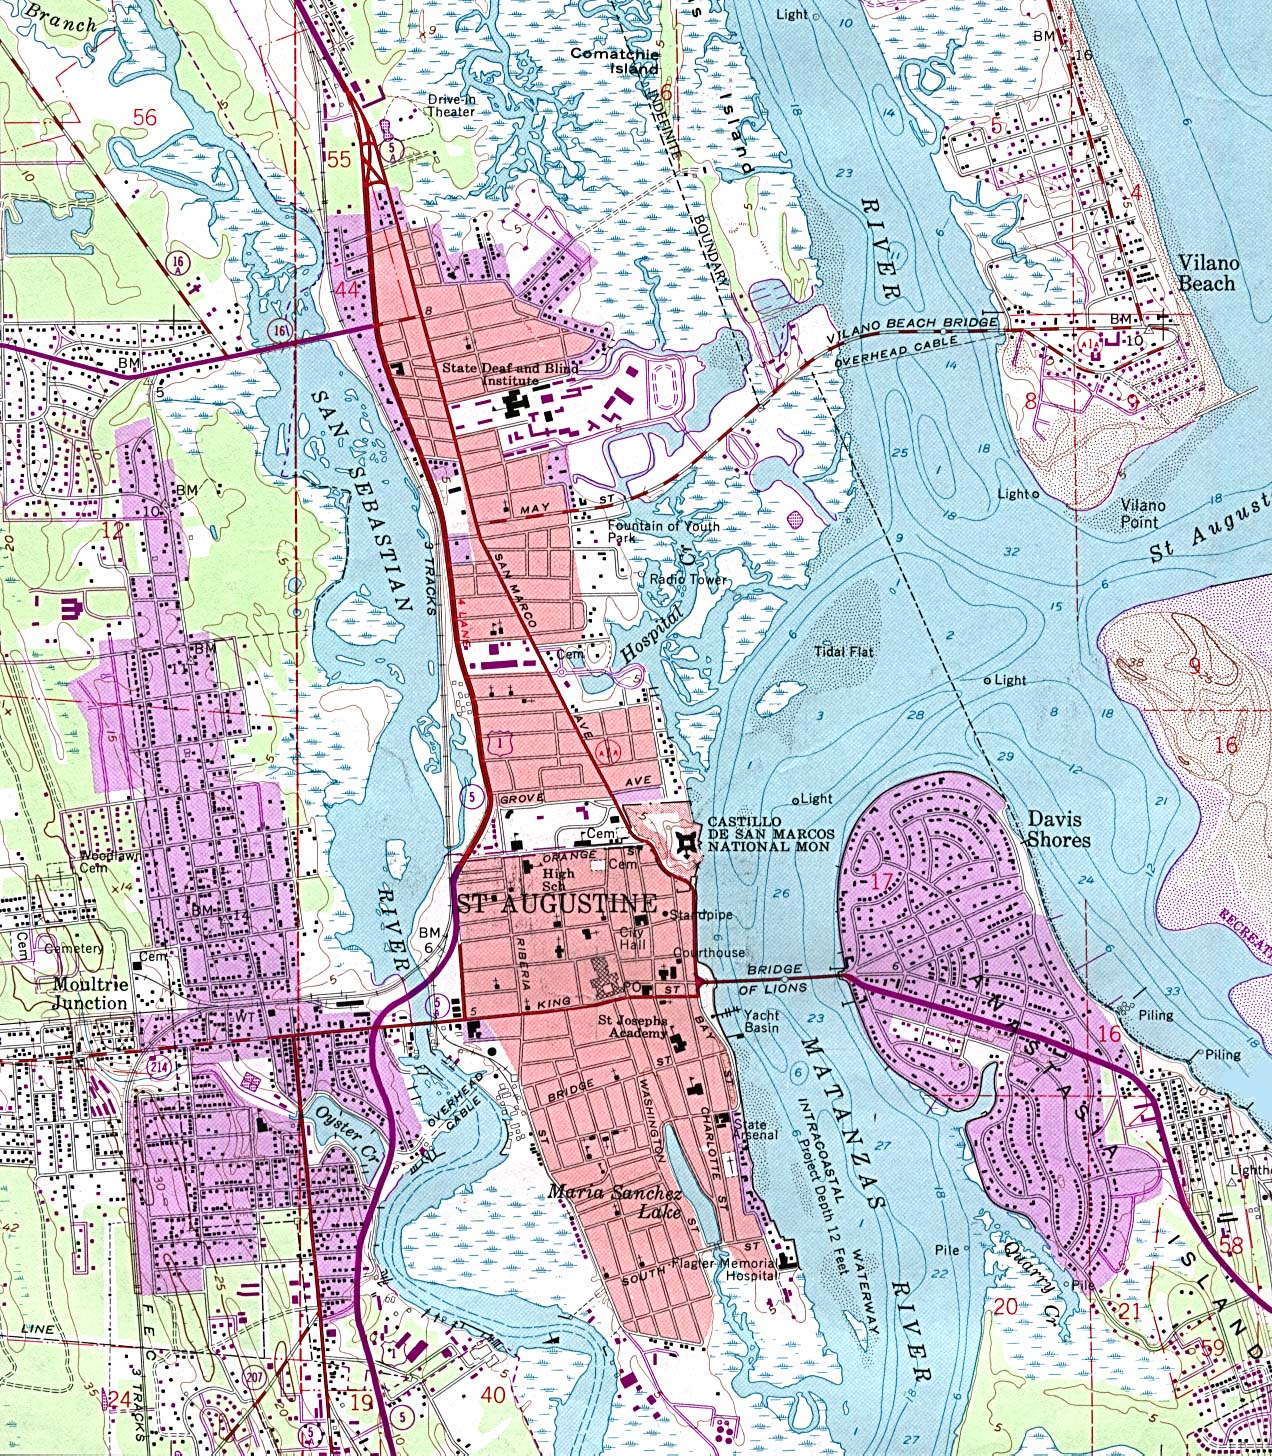 Map Of St Augustine Florida.File St Augustine Topographical Map Jpg Wikimedia Commons